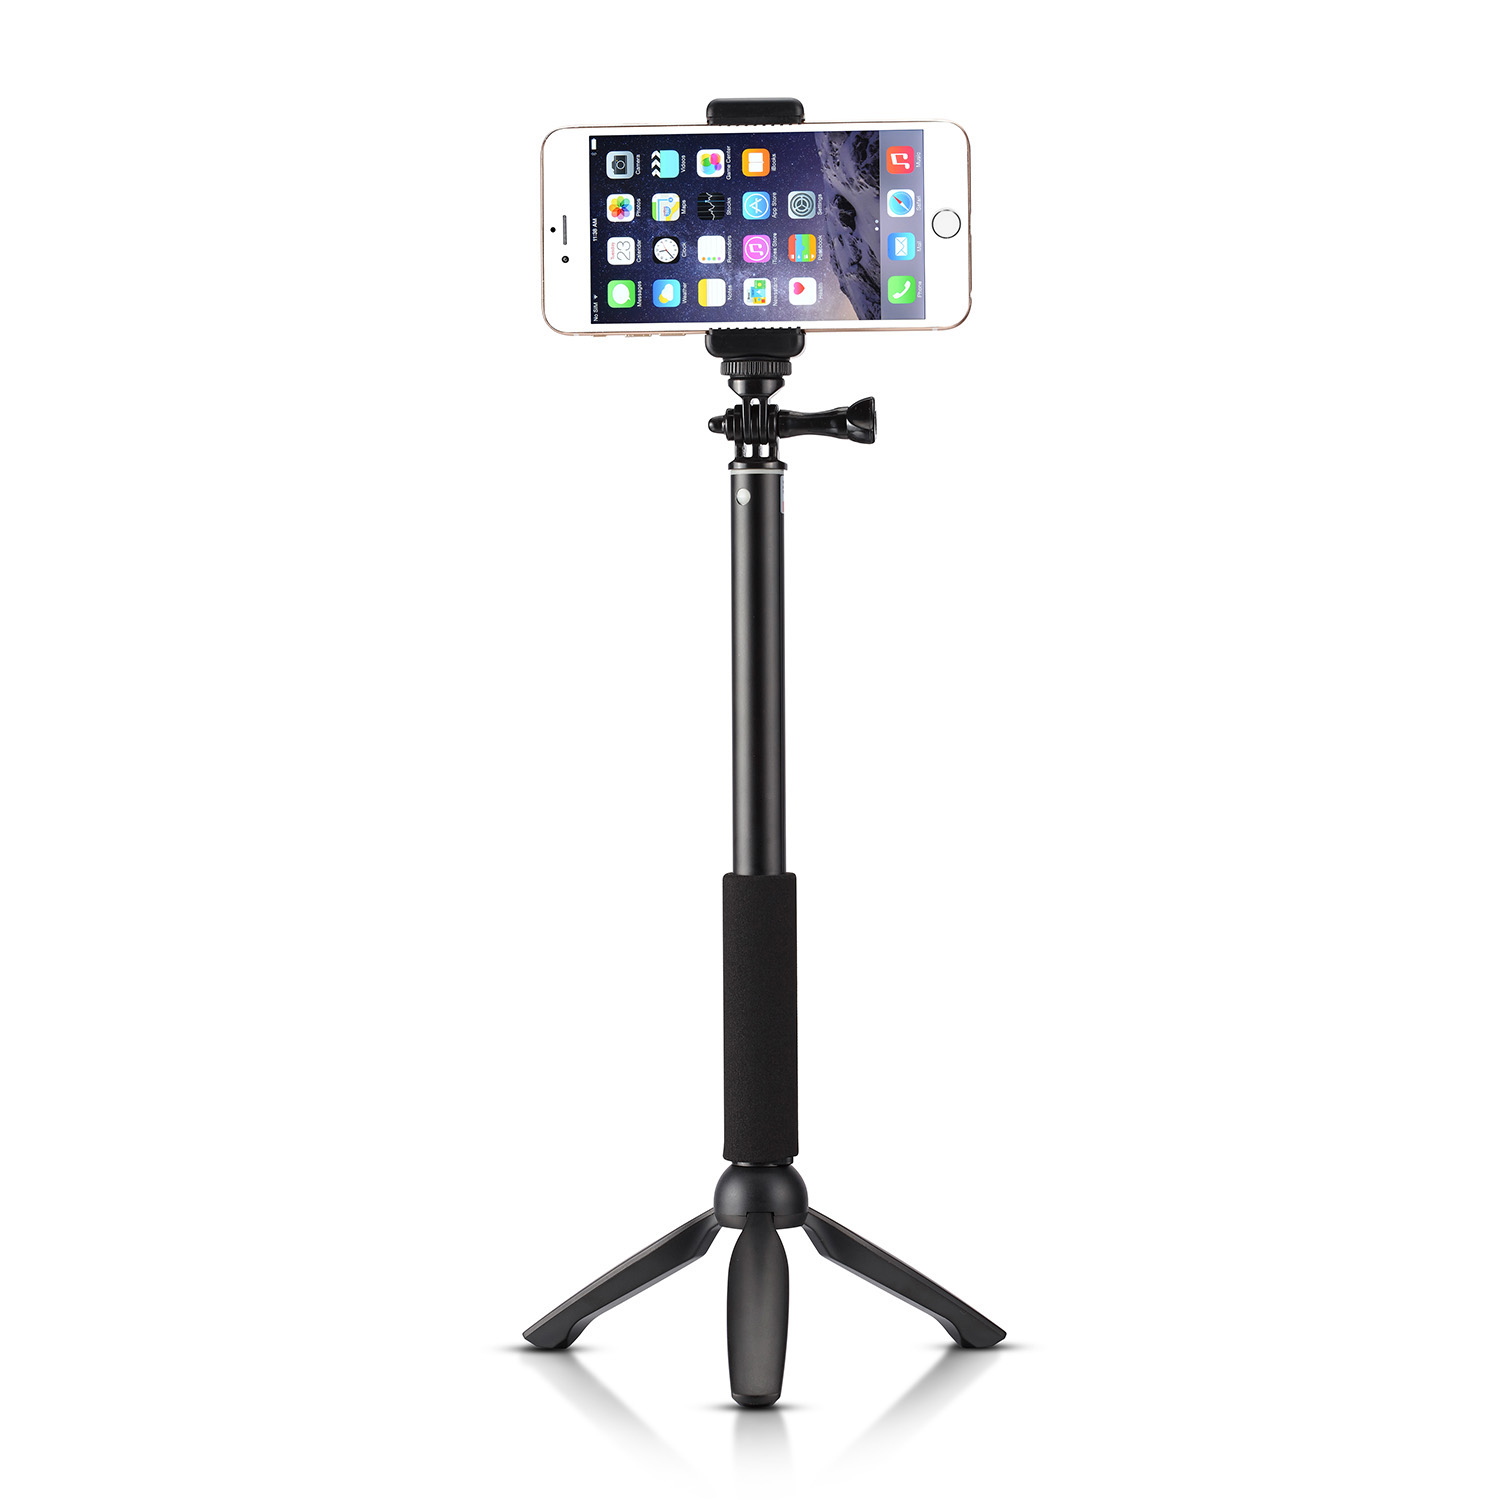 accmor rhythm pro bluetooth selfie stick with mini tripod stand accmor ac. Black Bedroom Furniture Sets. Home Design Ideas